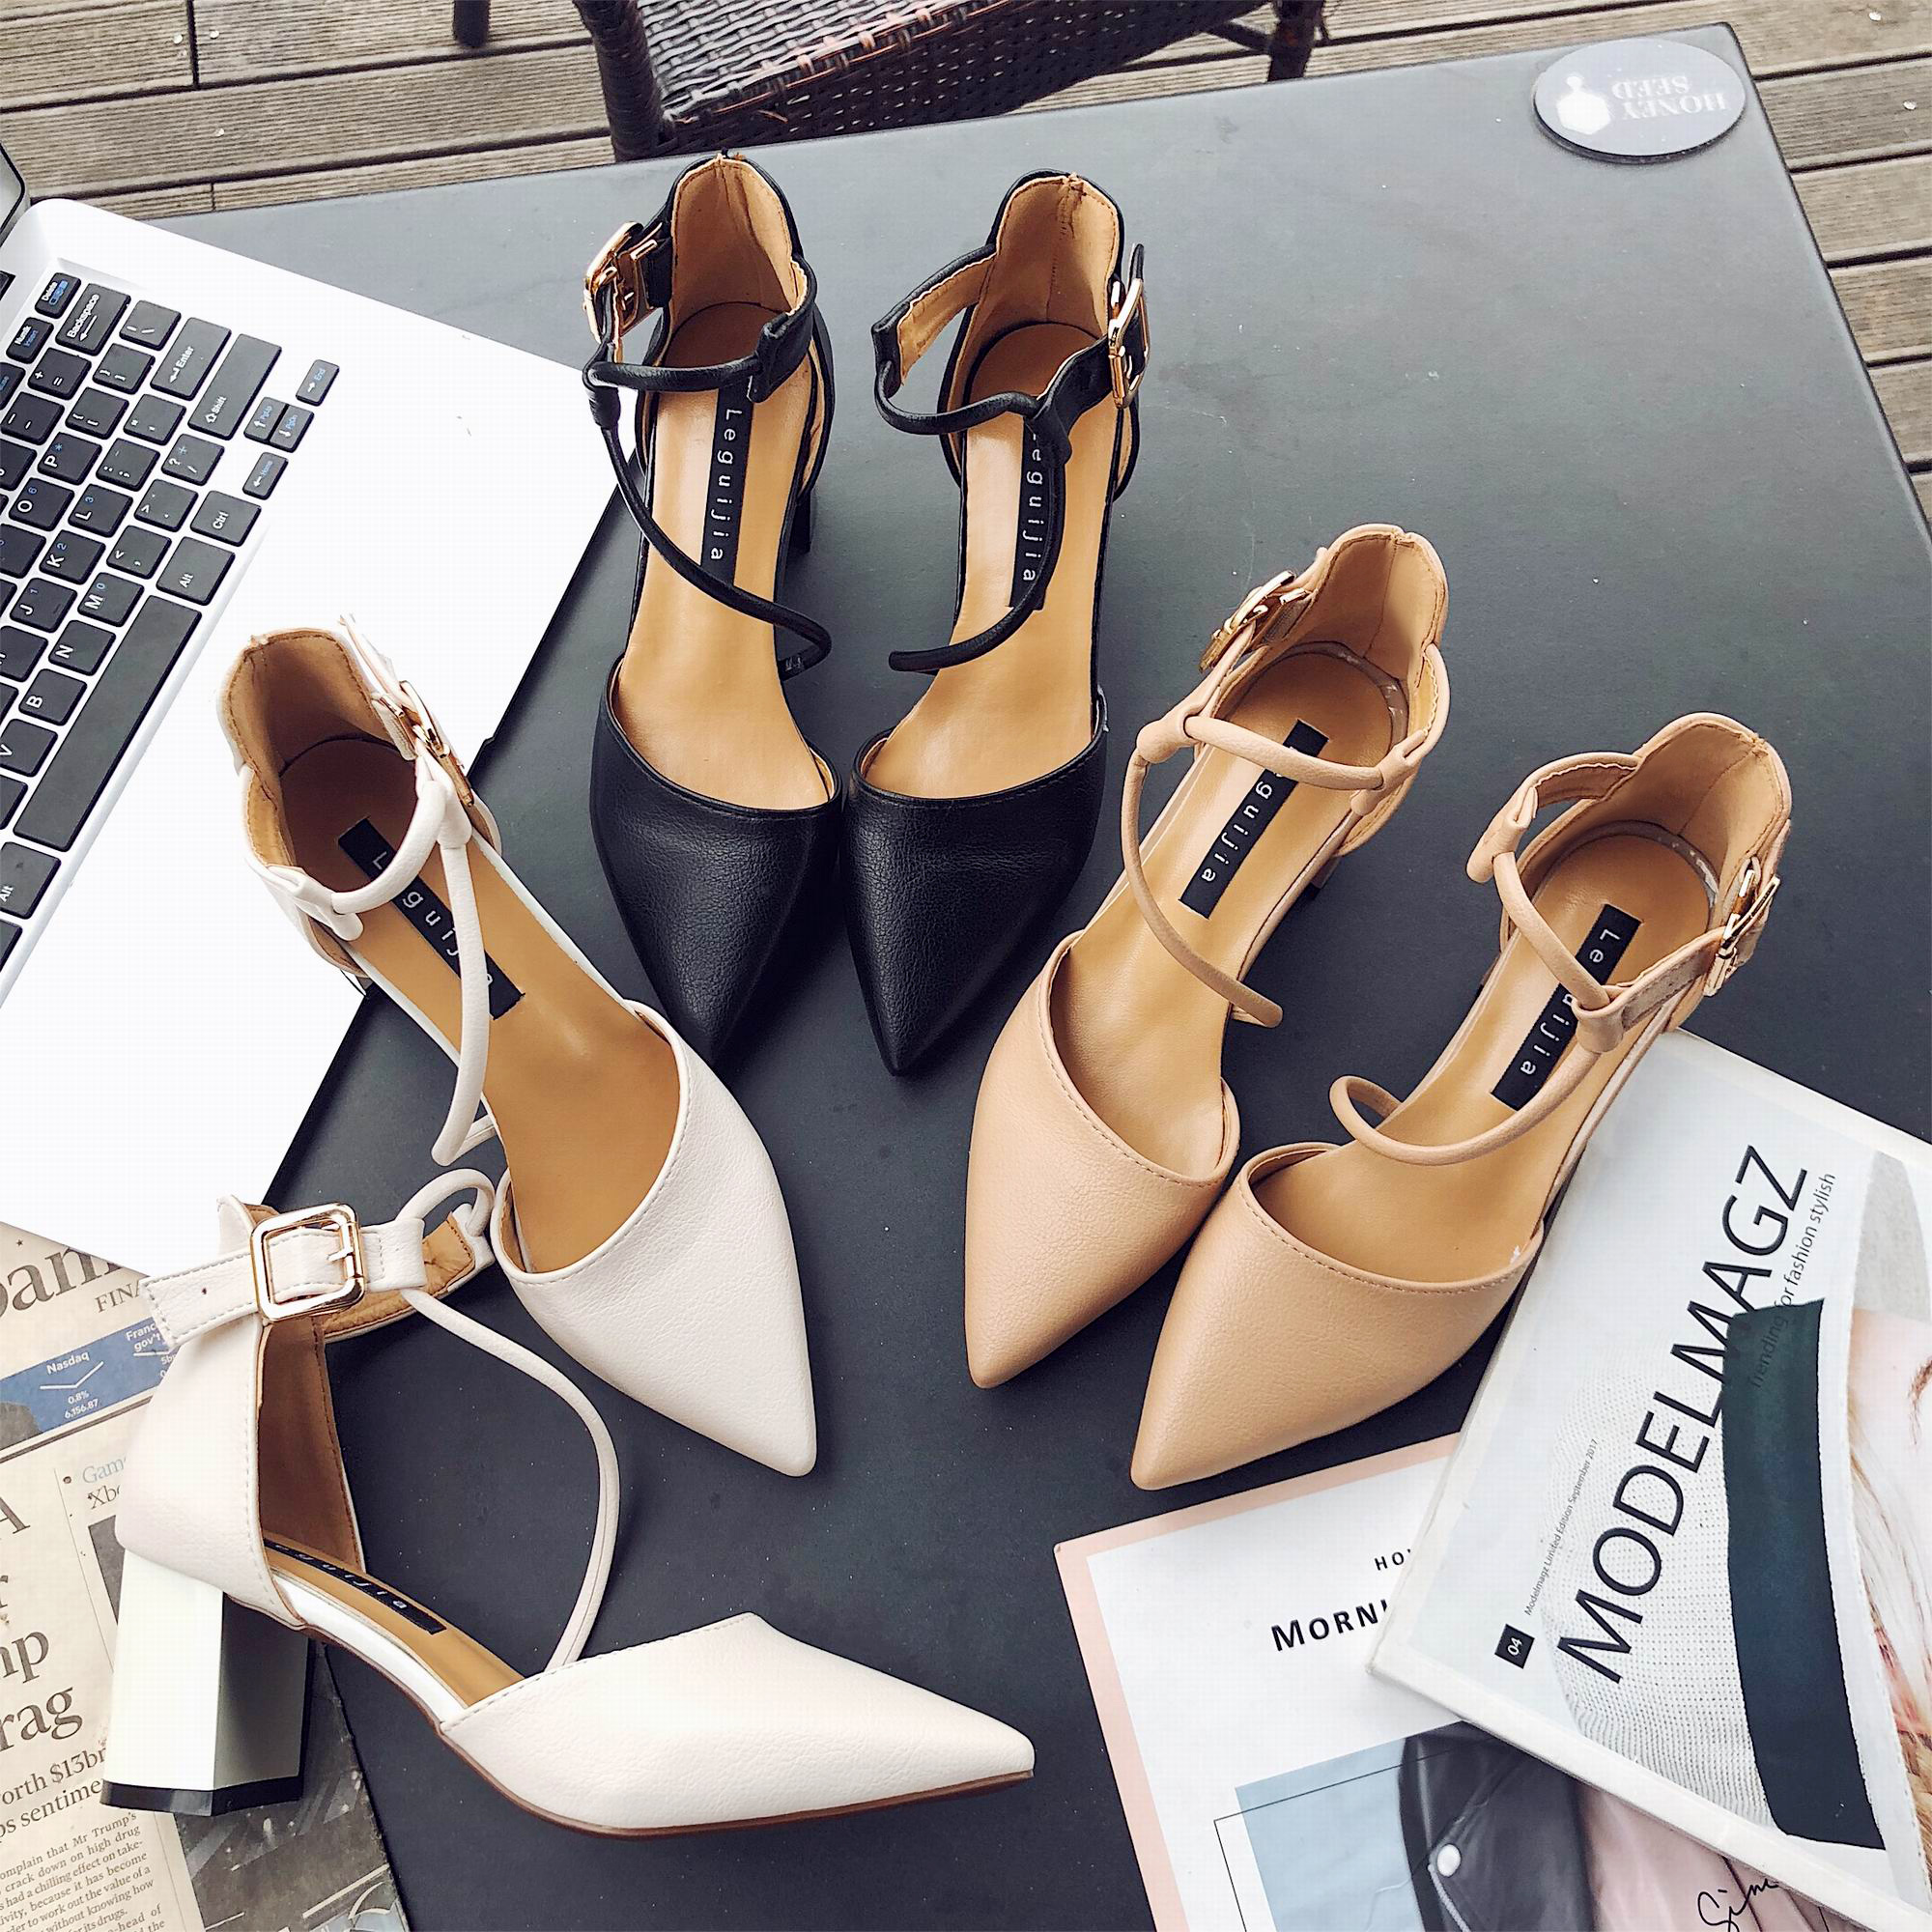 2018 new sexy comfortable wild thick with single shoes pointed straps high heels shallow mouth fashion wild high heels2018 new sexy comfortable wild thick with single shoes pointed straps high heels shallow mouth fashion wild high heels